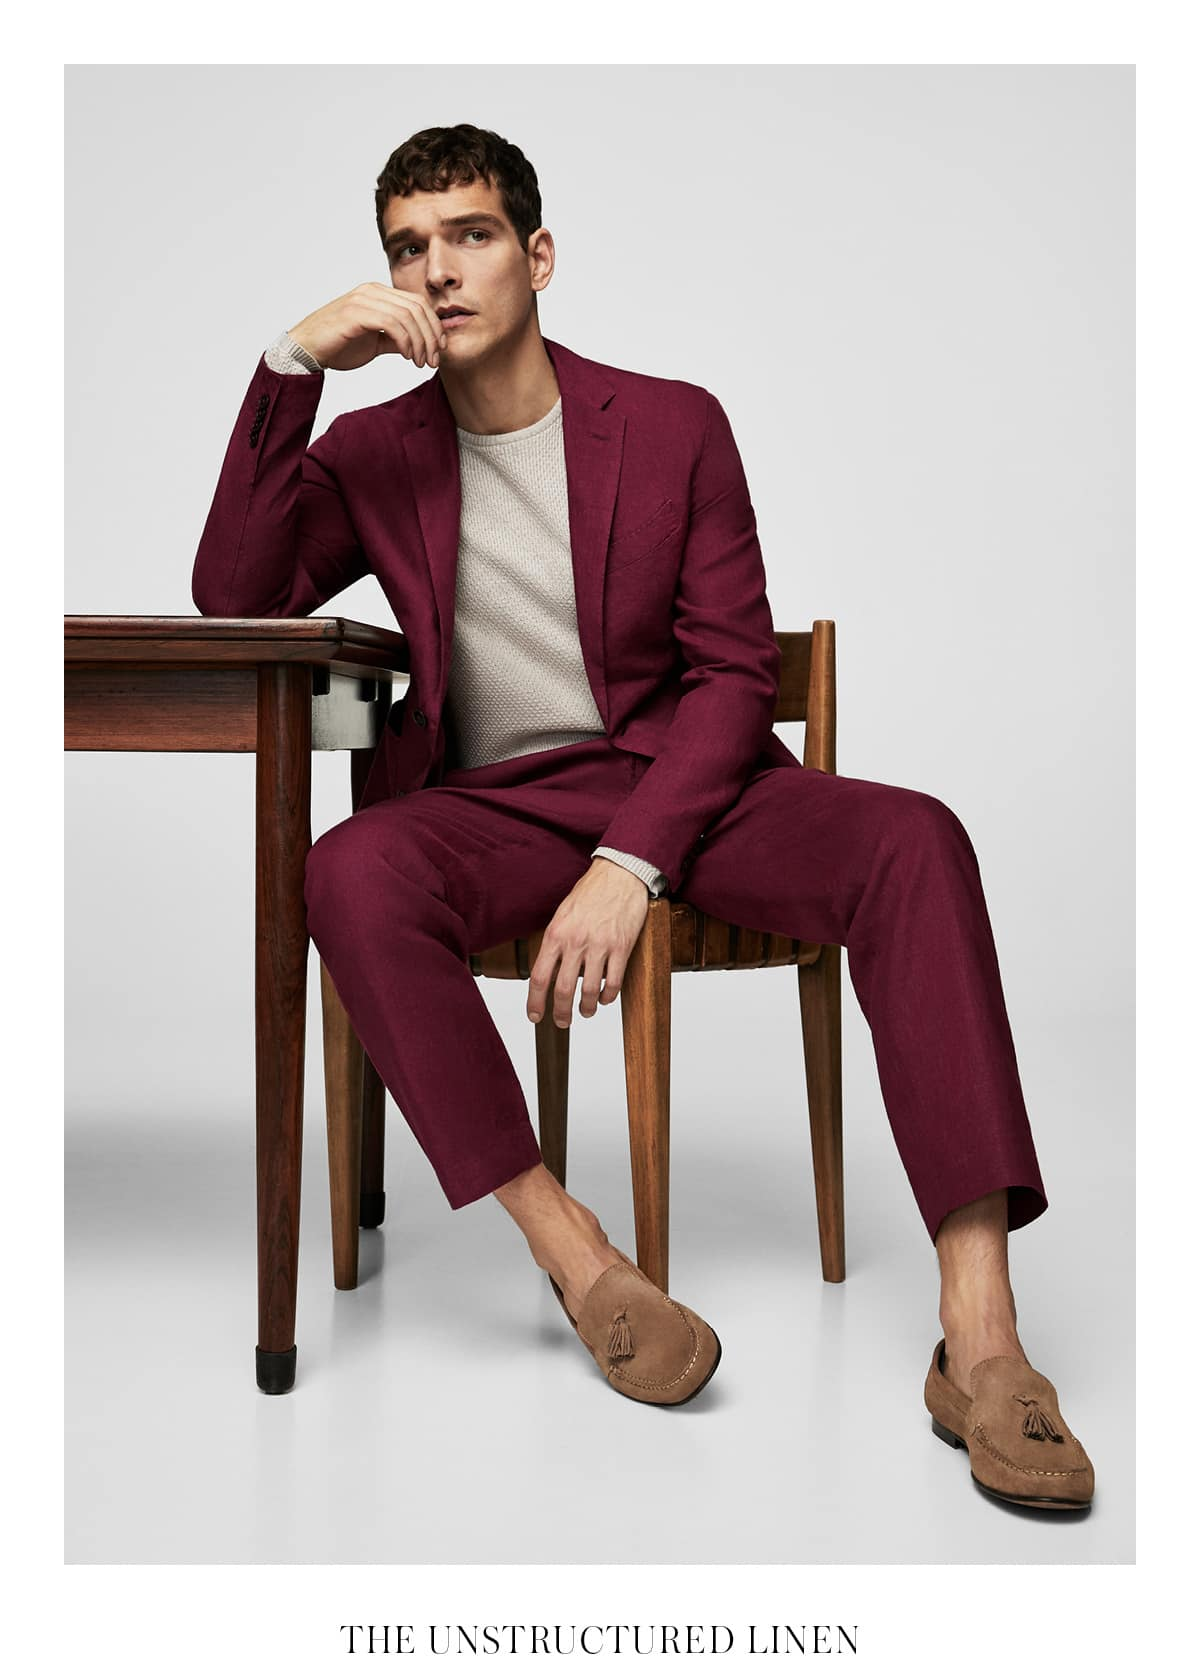 The go-to tailoring type when the situation requires equal doses of comfort and sophistication.